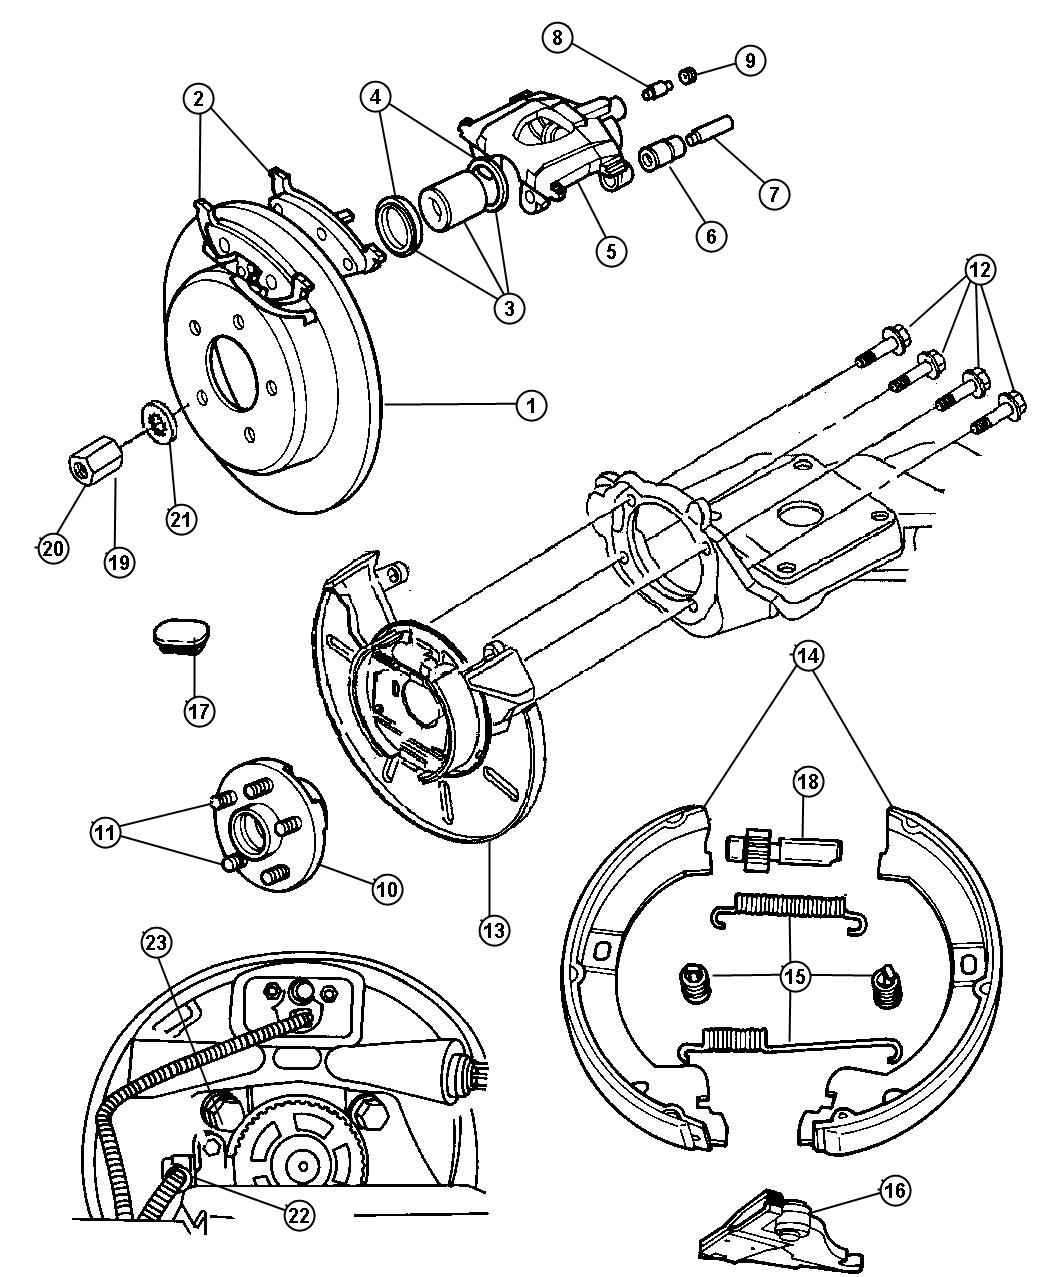 Dodge Caravan Pad kit. Rear disc brake. [4-wheel disc